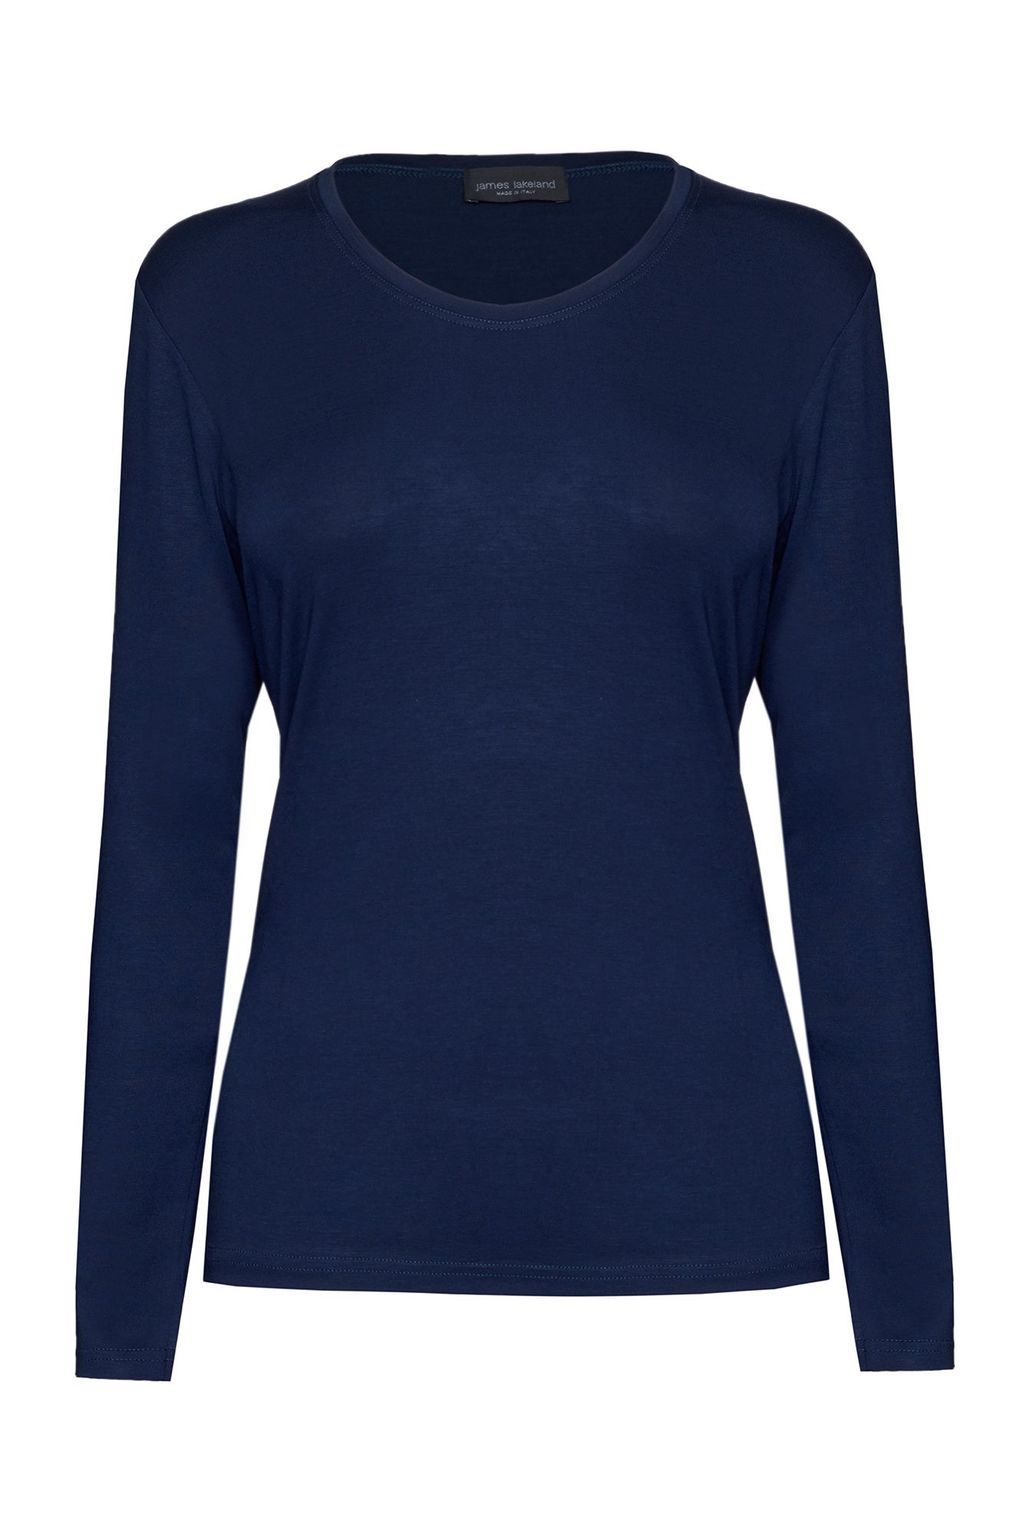 Basic Long Sleeve T Shirt, Navy - pattern: plain; style: t-shirt; predominant colour: navy; occasions: casual; length: standard; fibres: viscose/rayon - stretch; fit: body skimming; neckline: crew; sleeve length: long sleeve; sleeve style: standard; pattern type: fabric; texture group: jersey - stretchy/drapey; season: a/w 2015